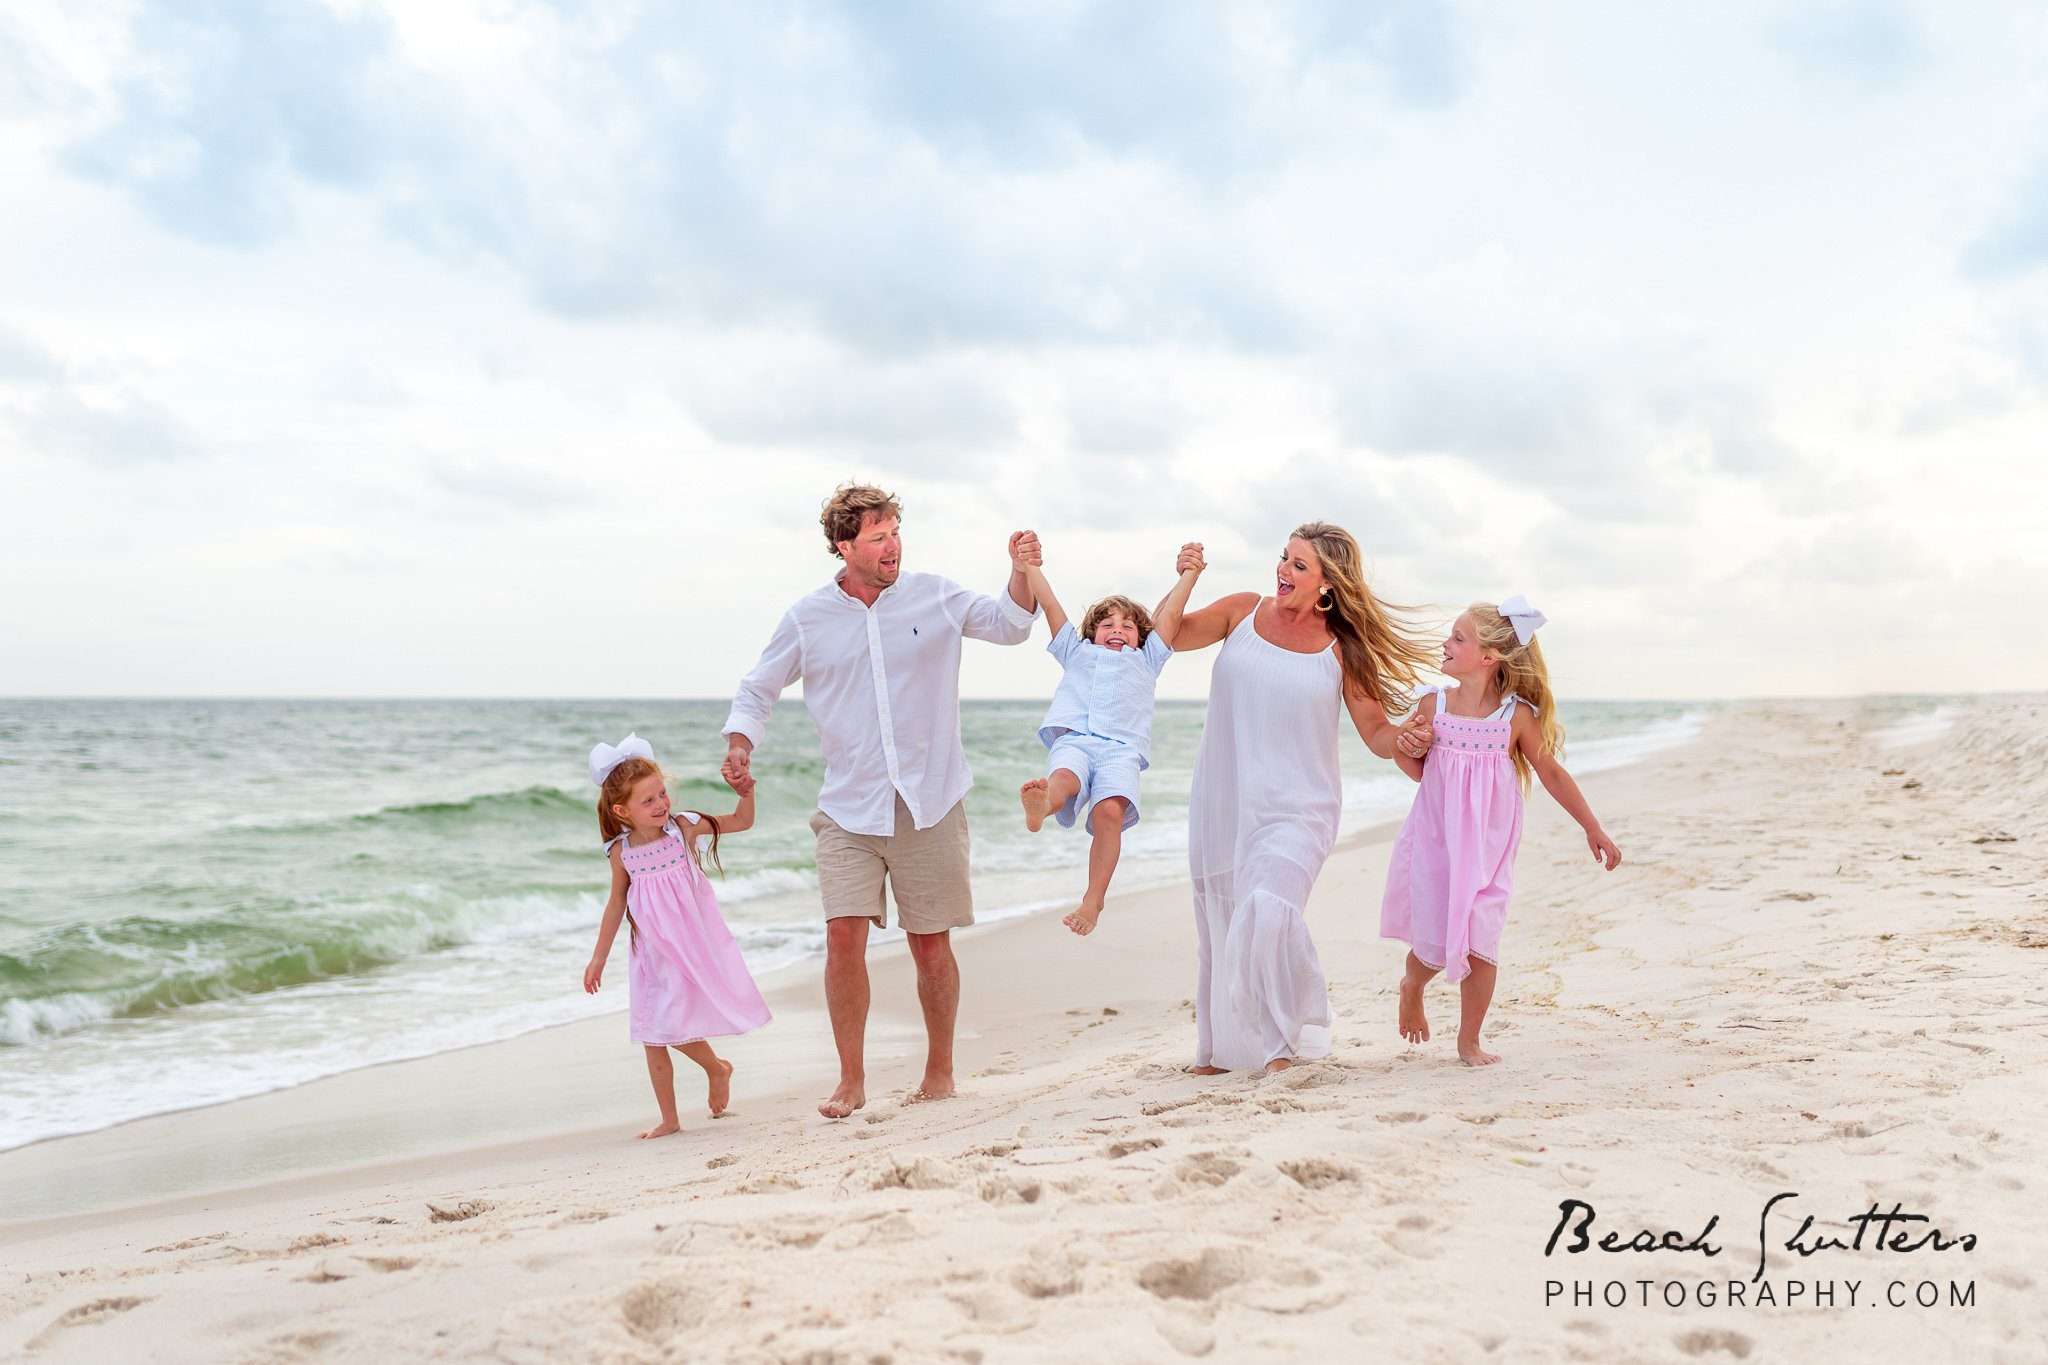 Beach Shutters photography photo mini sessions